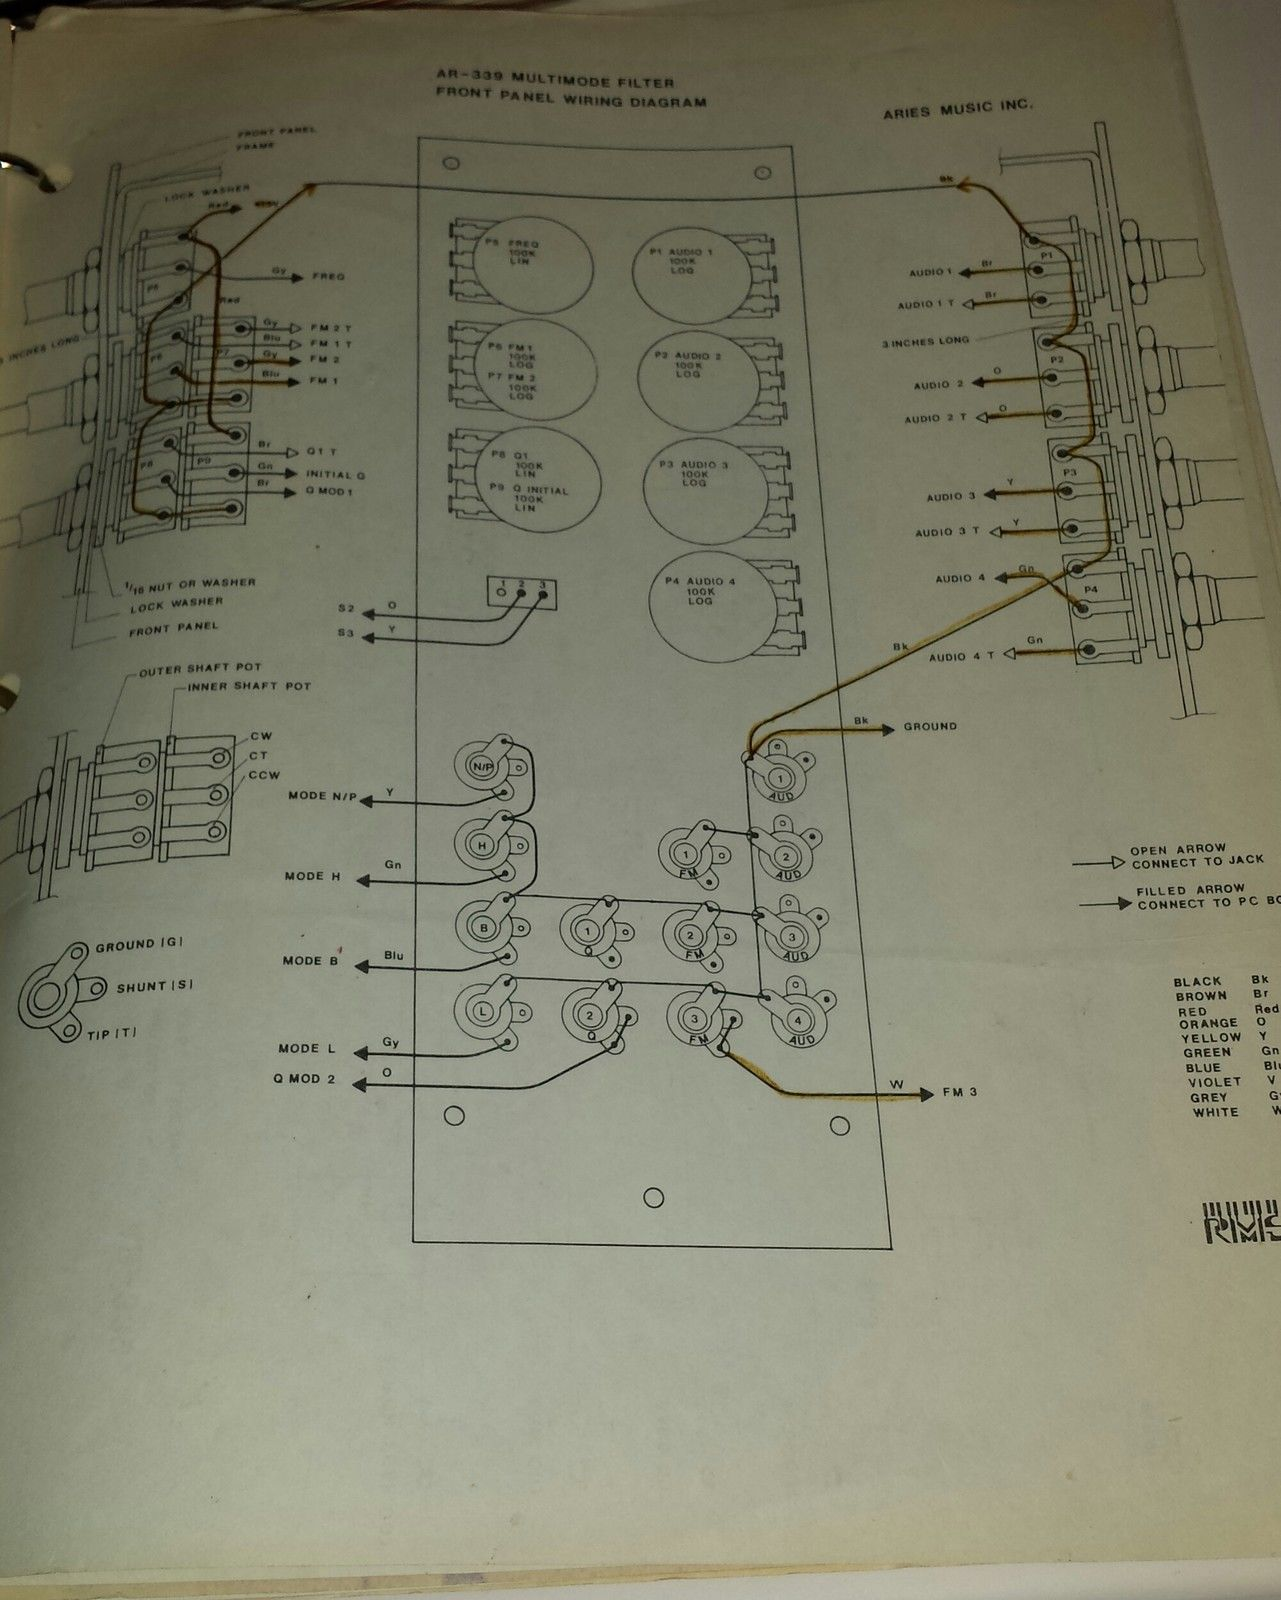 Peachy Matrixsynth Aries Modular Synthesizer Owners Manual With Blueprints Wiring Cloud Hisonuggs Outletorg